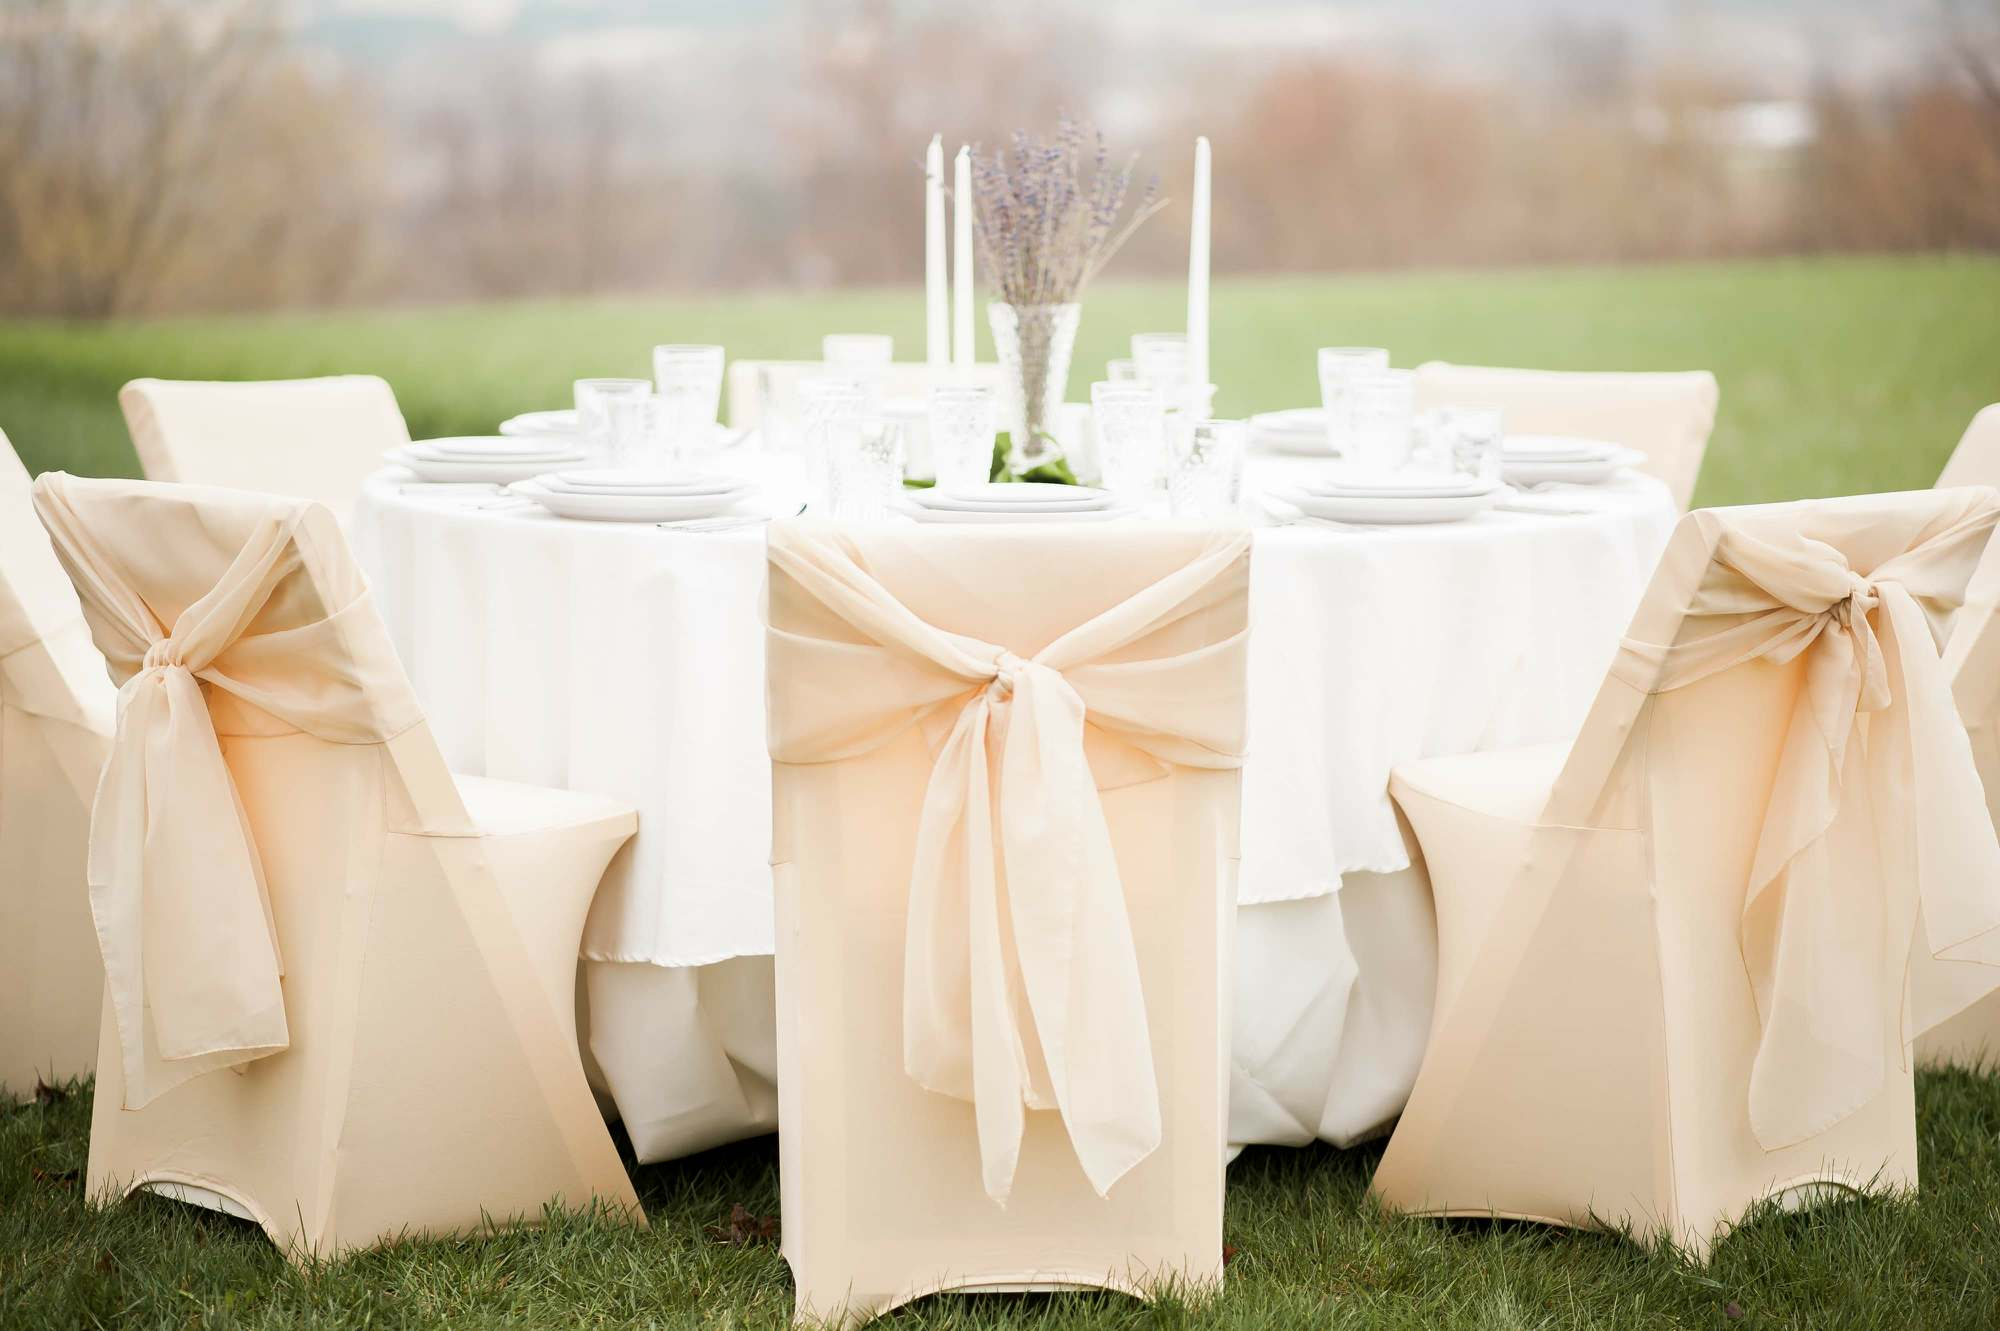 Chair covers outside.jpg